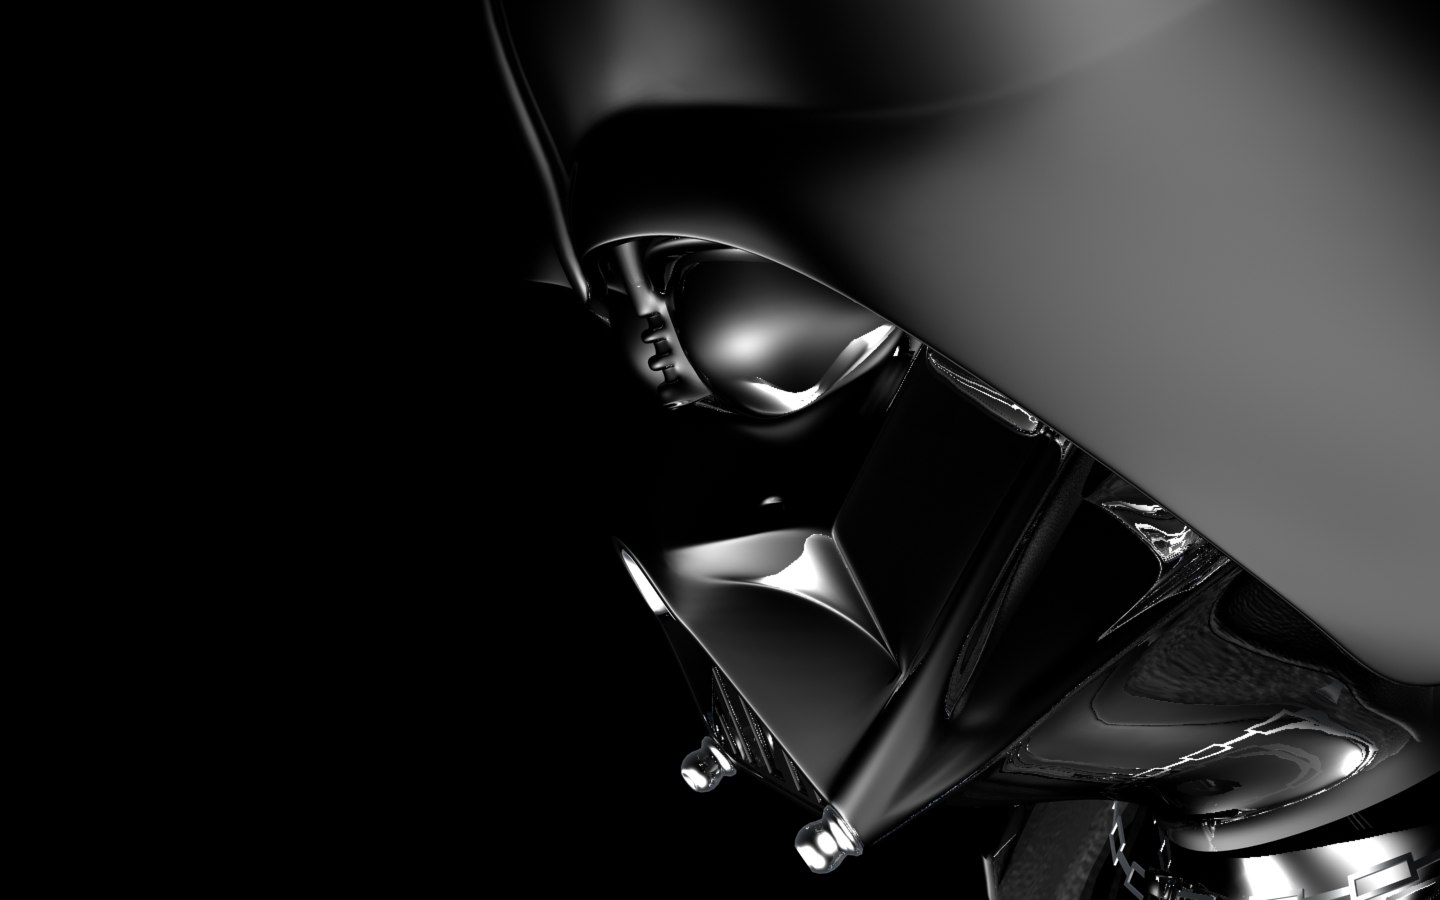 MEGA POST IMAGENES STAR WARS Darth_Vader_hlmet-3D_Wallpaper-1440x900